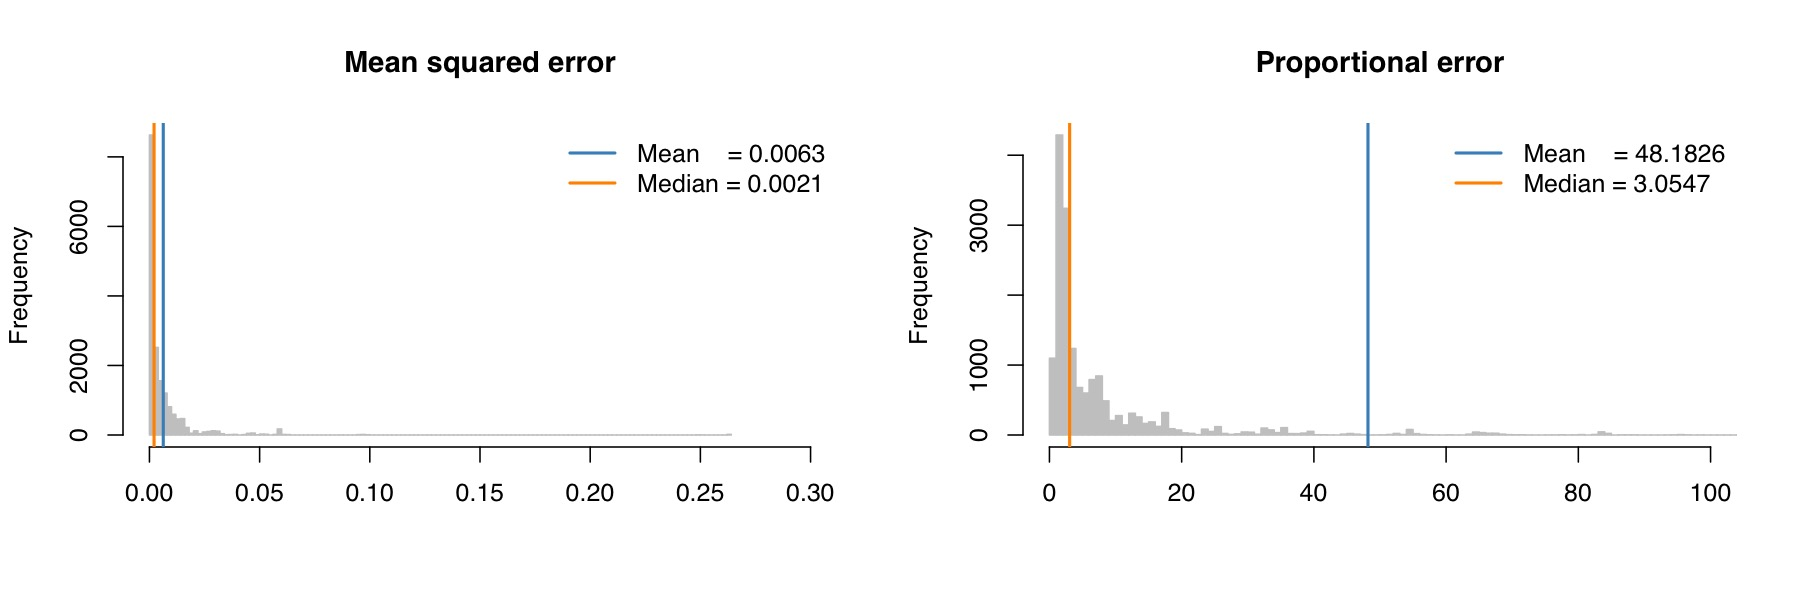 "Figure 9. Error in extinction-rate estimates using the ""random"" option implemented in BAMM. These results are summarized as described in the legend for Figure 8, but here pertain to error in extinction-rate estimates. The extinction-rate estimates, as expected, are more severely biased than speciation-rate estimates."